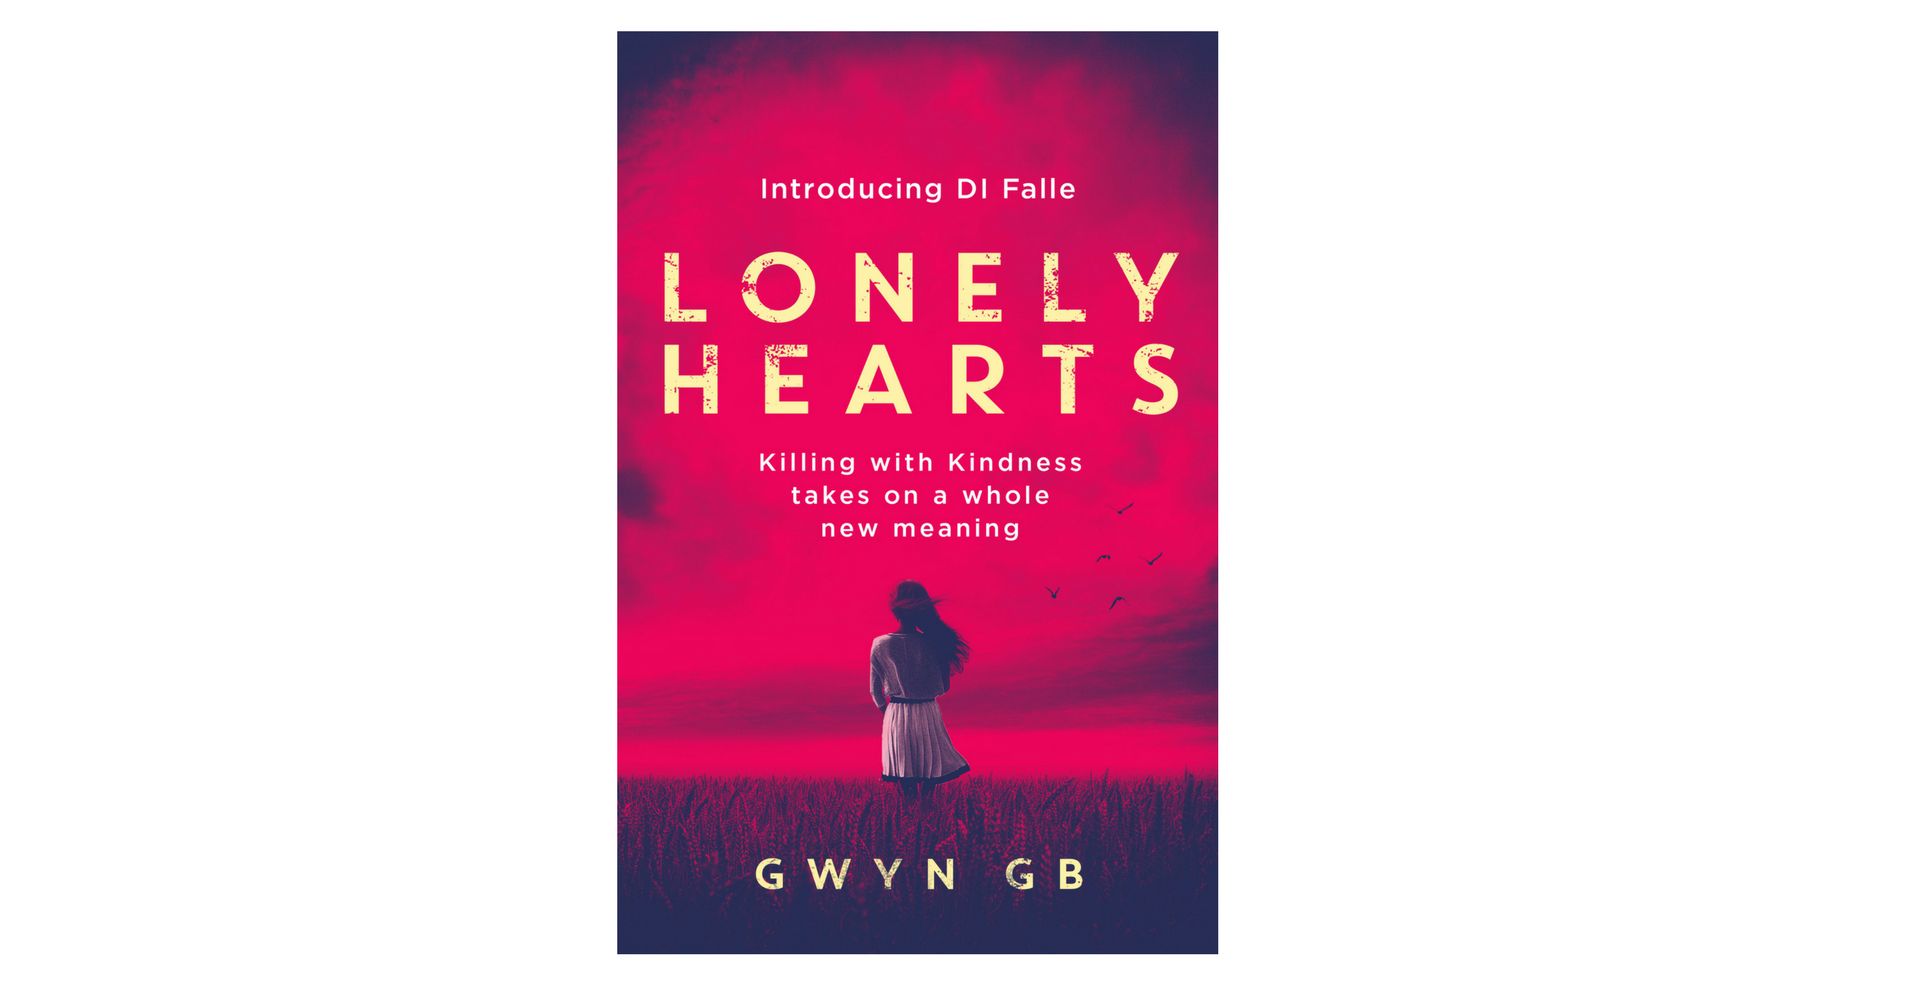 Lonely Hearts by Gwyn GB